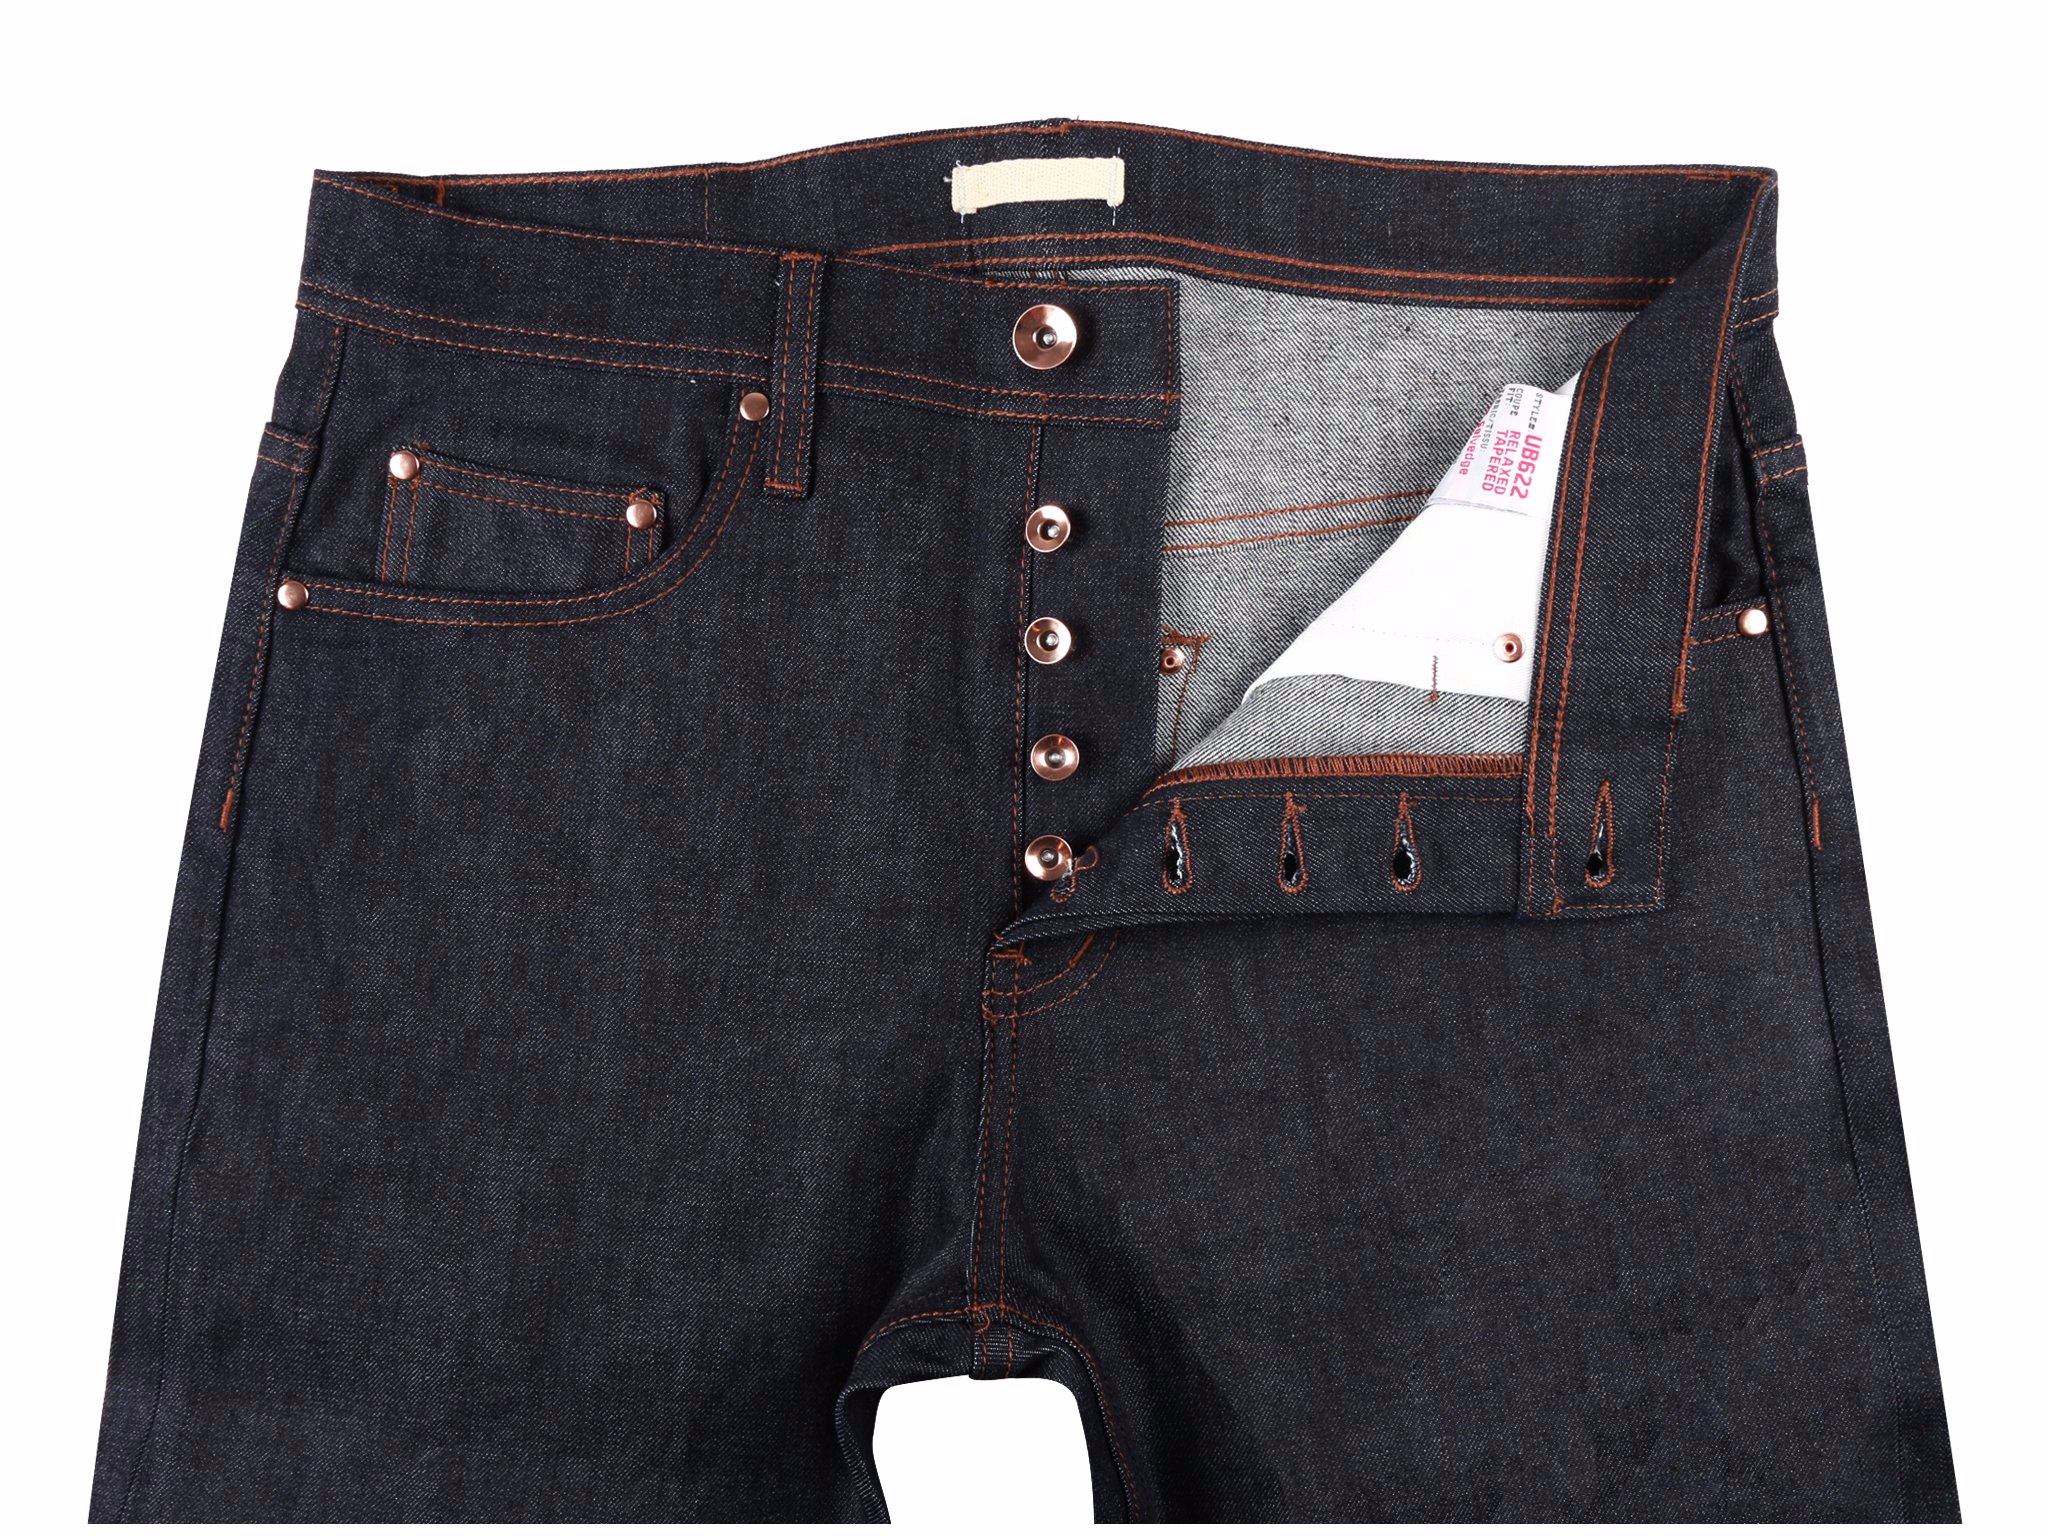 4319f65c3cdcbd Raw Denim for Muscular Thighs- A Review of Unbranded Brand Jeans ...